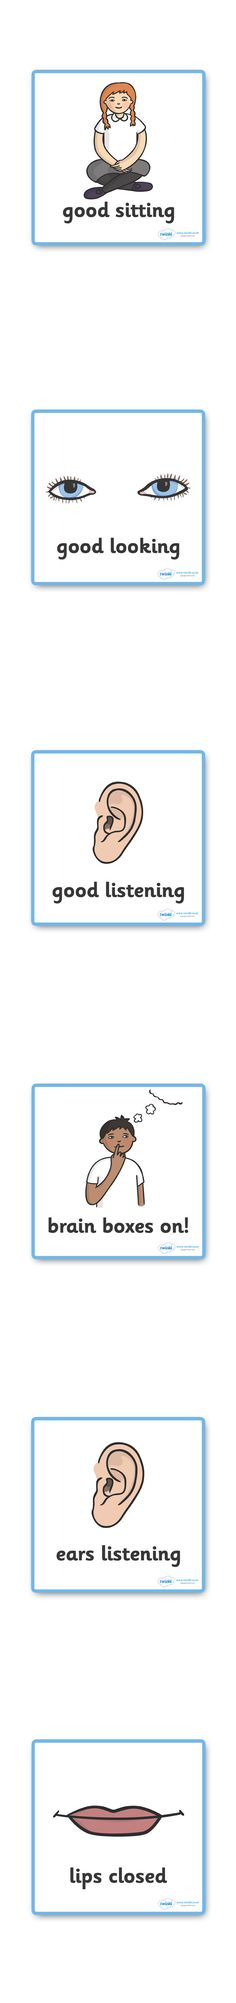 Twinkl Resources >> Good Listening Cards  >> Thousands of printable primary teaching resources for EYFS, KS1, KS2 and beyond! good listening, listen, behaviour management, SEN, good sitting, good listening, good looking, lips closed, brain box,